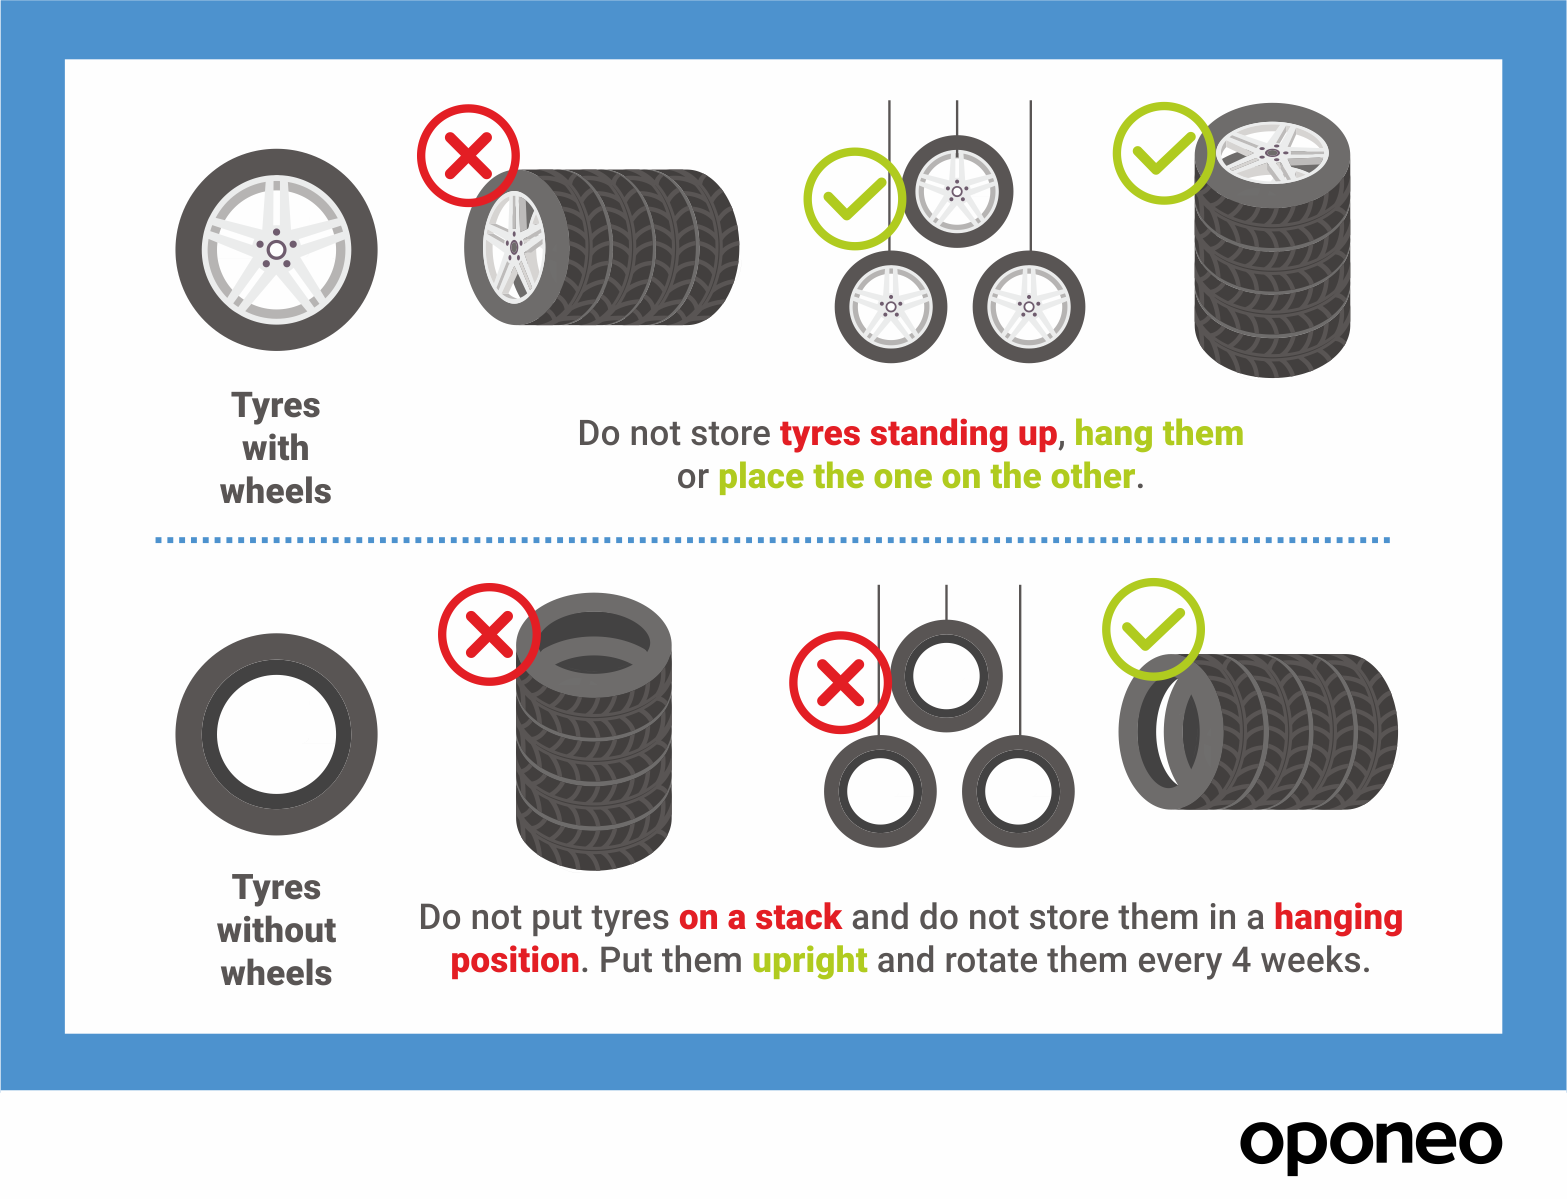 Tips on Storing Your Tyres Correctly